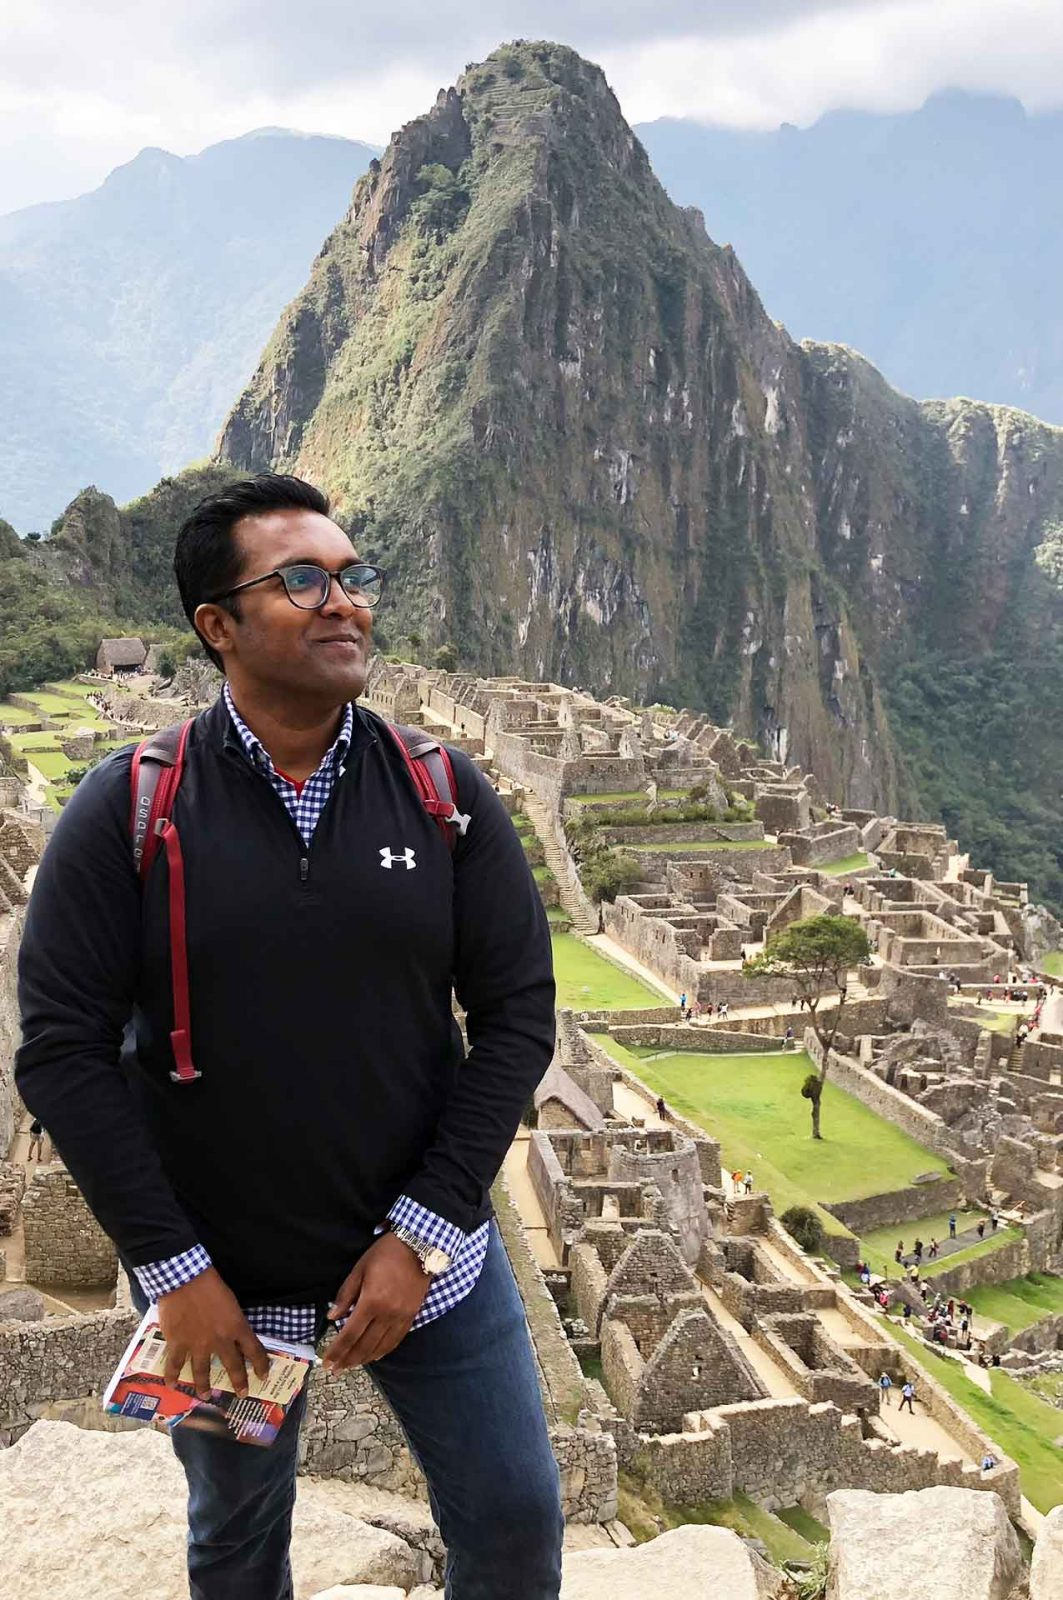 techstars mentor abhi ghosh in lima peru on sabbatical before leading shot ventures